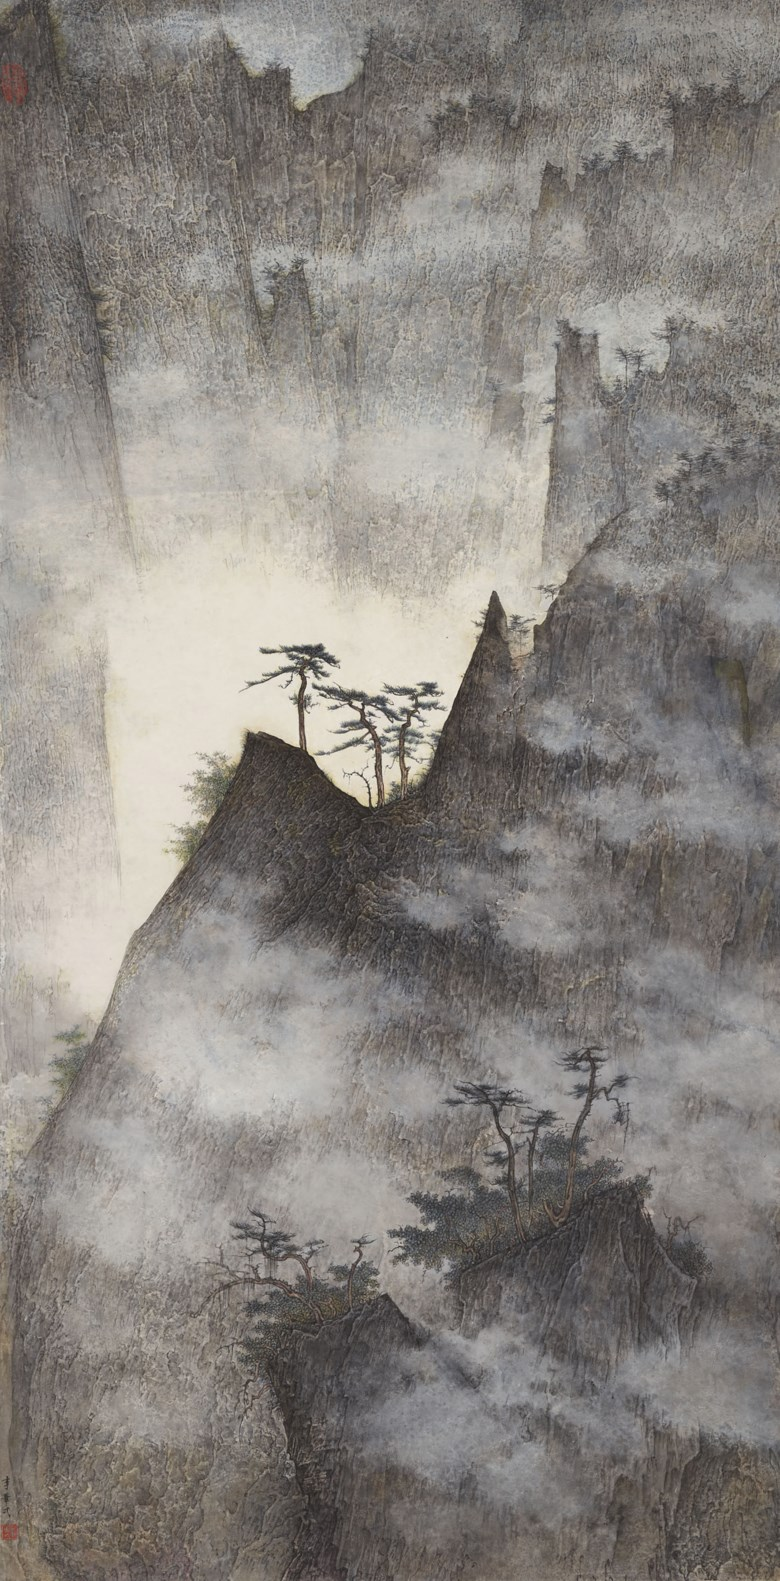 Li Huayi (b. 1948), Rising Mountain, 2006. Scroll, mounted and framed, ink and colour on paper. 53¾ x 26⅝ in (136.5 x 67.5  cm). Estimate HK$1,600,000-2,600,000. Offered in Chinese Contemporary Ink on 25 November 2019 at Christie's in Hong Kong